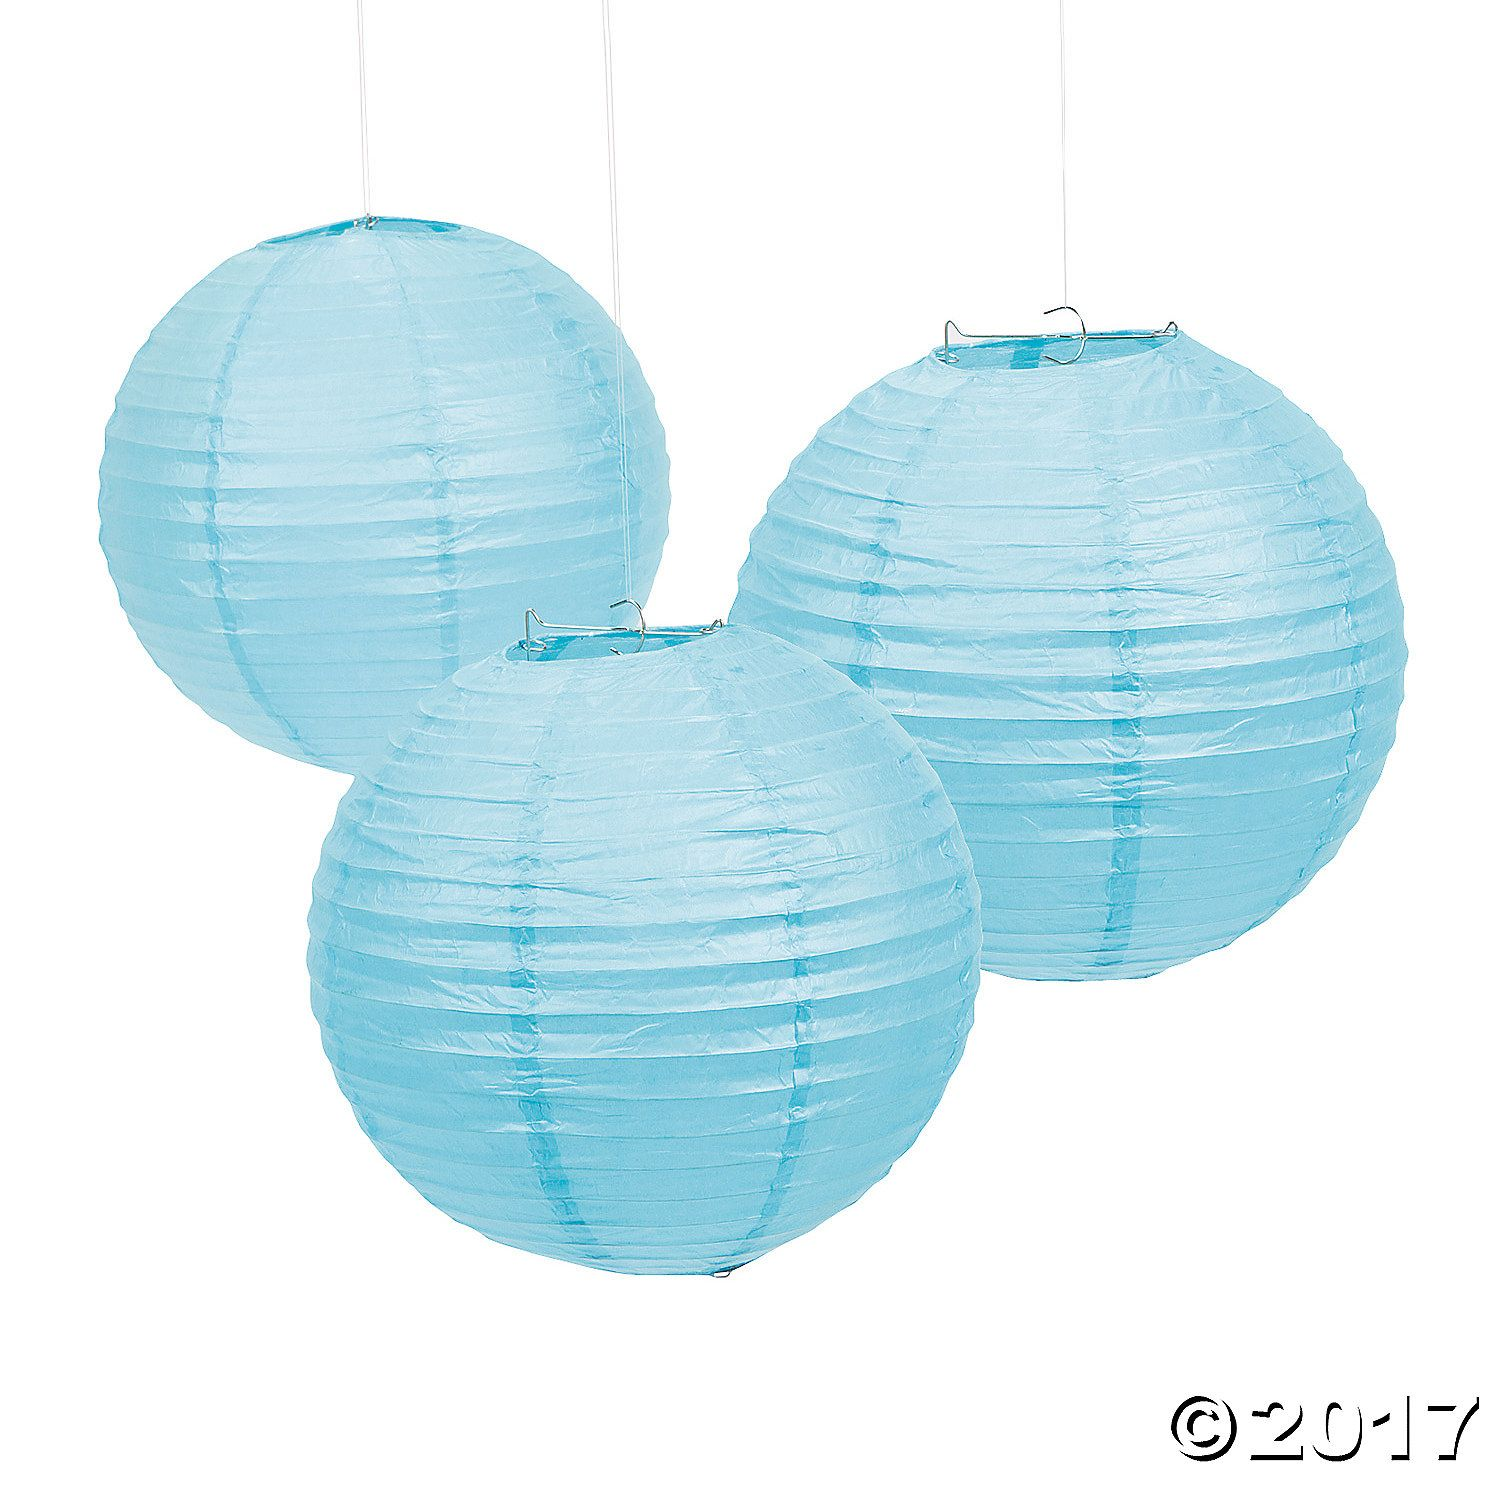 Light Blue Hanging Paper Lanterns - OrientalTrading.com $12.99 for 6 pcs (think that means lanterns and not lantern and wire thing)... think these are lighter than my color but closest we'll get.. maybe do light and dark blue accents? with white glitter and the silver?